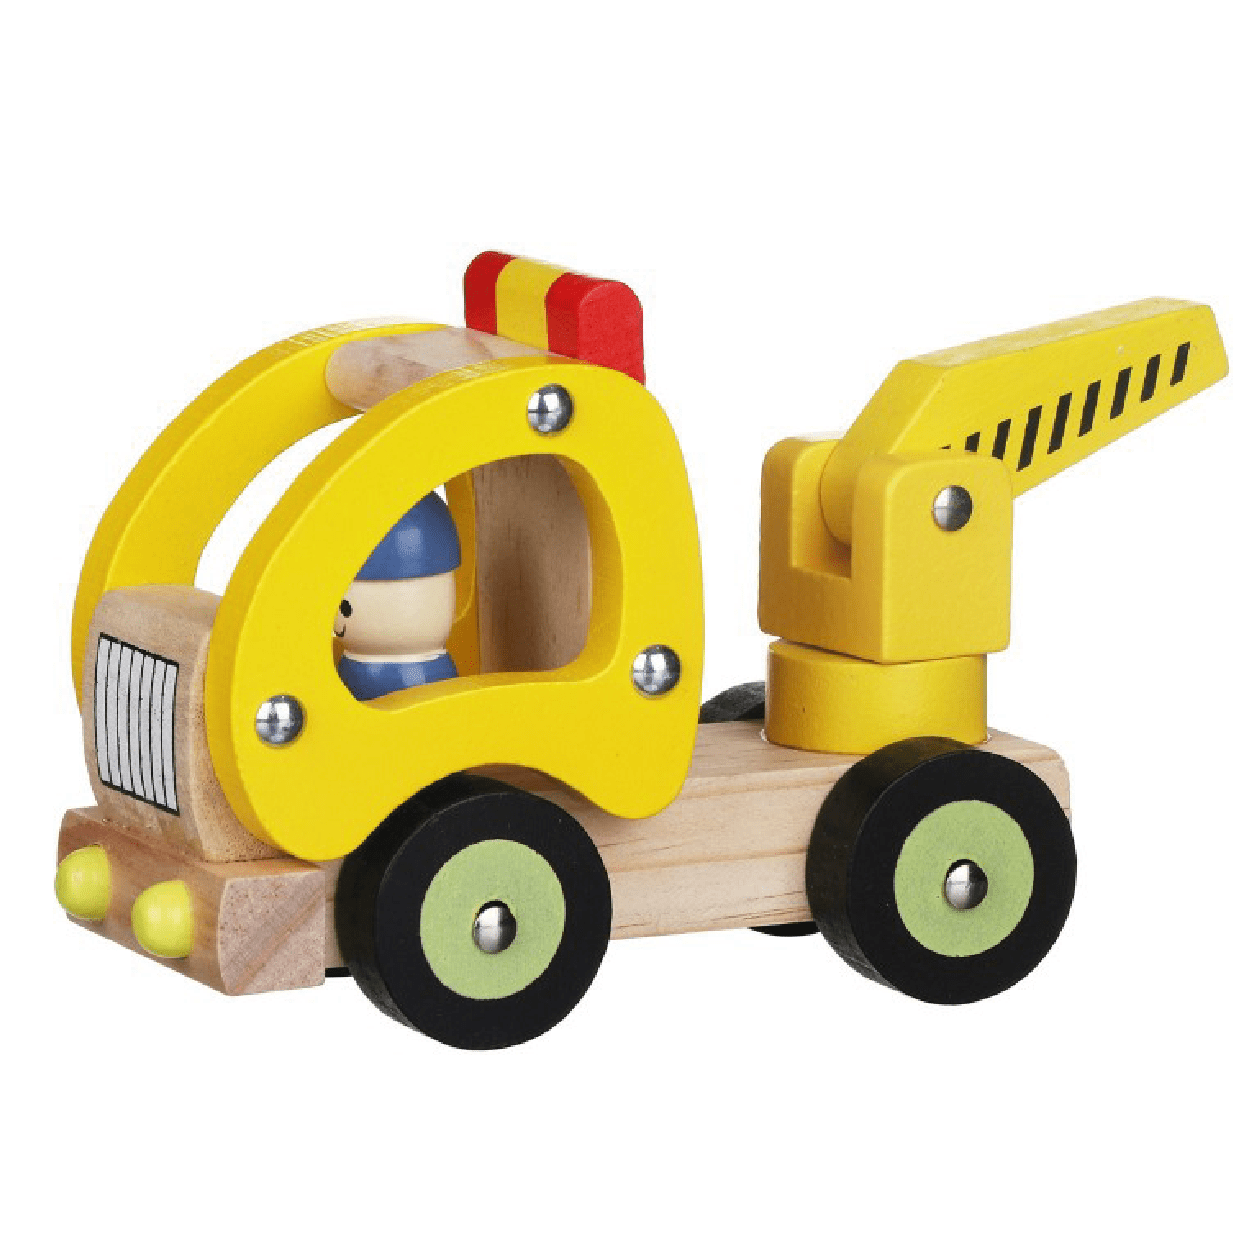 Retro Wooden Trucks - Assorted Designs - only5pounds.com